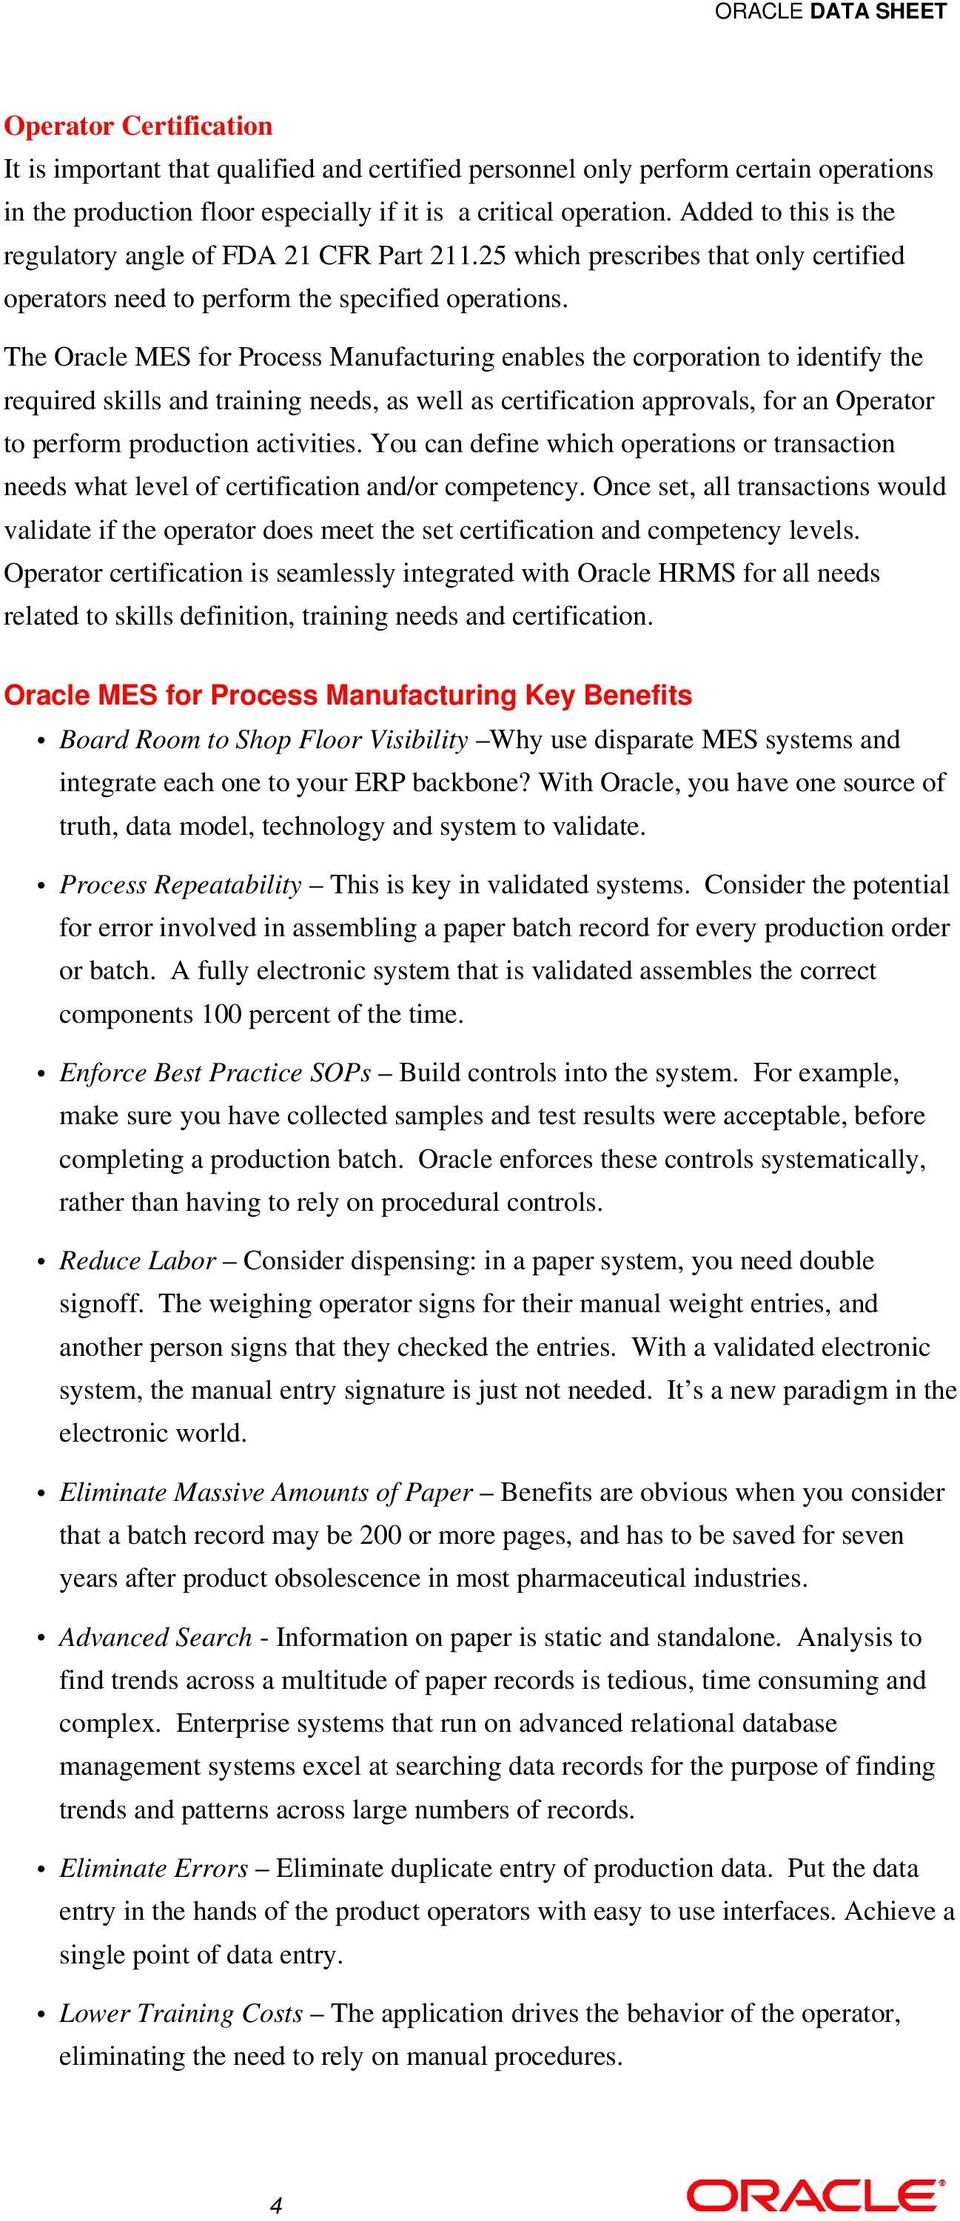 The Oracle MES for Process Manufacturing enables the corporation to identify the required skills and training needs, as well as certification approvals, for an Operator to perform production